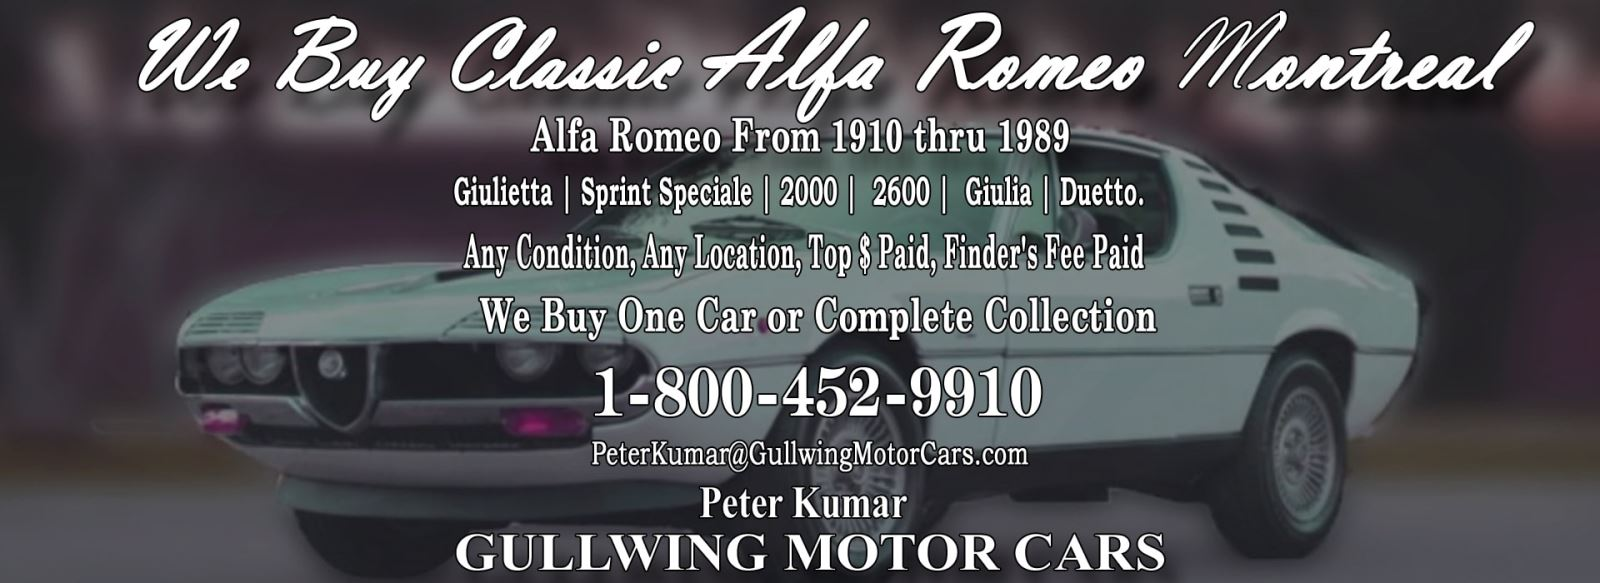 Classic Alfa Romeo Montreal Coupe for sale, we buy vintage Alfa Romeo Montreal Coupe. Call Peter Kumar. Gullwing Motor